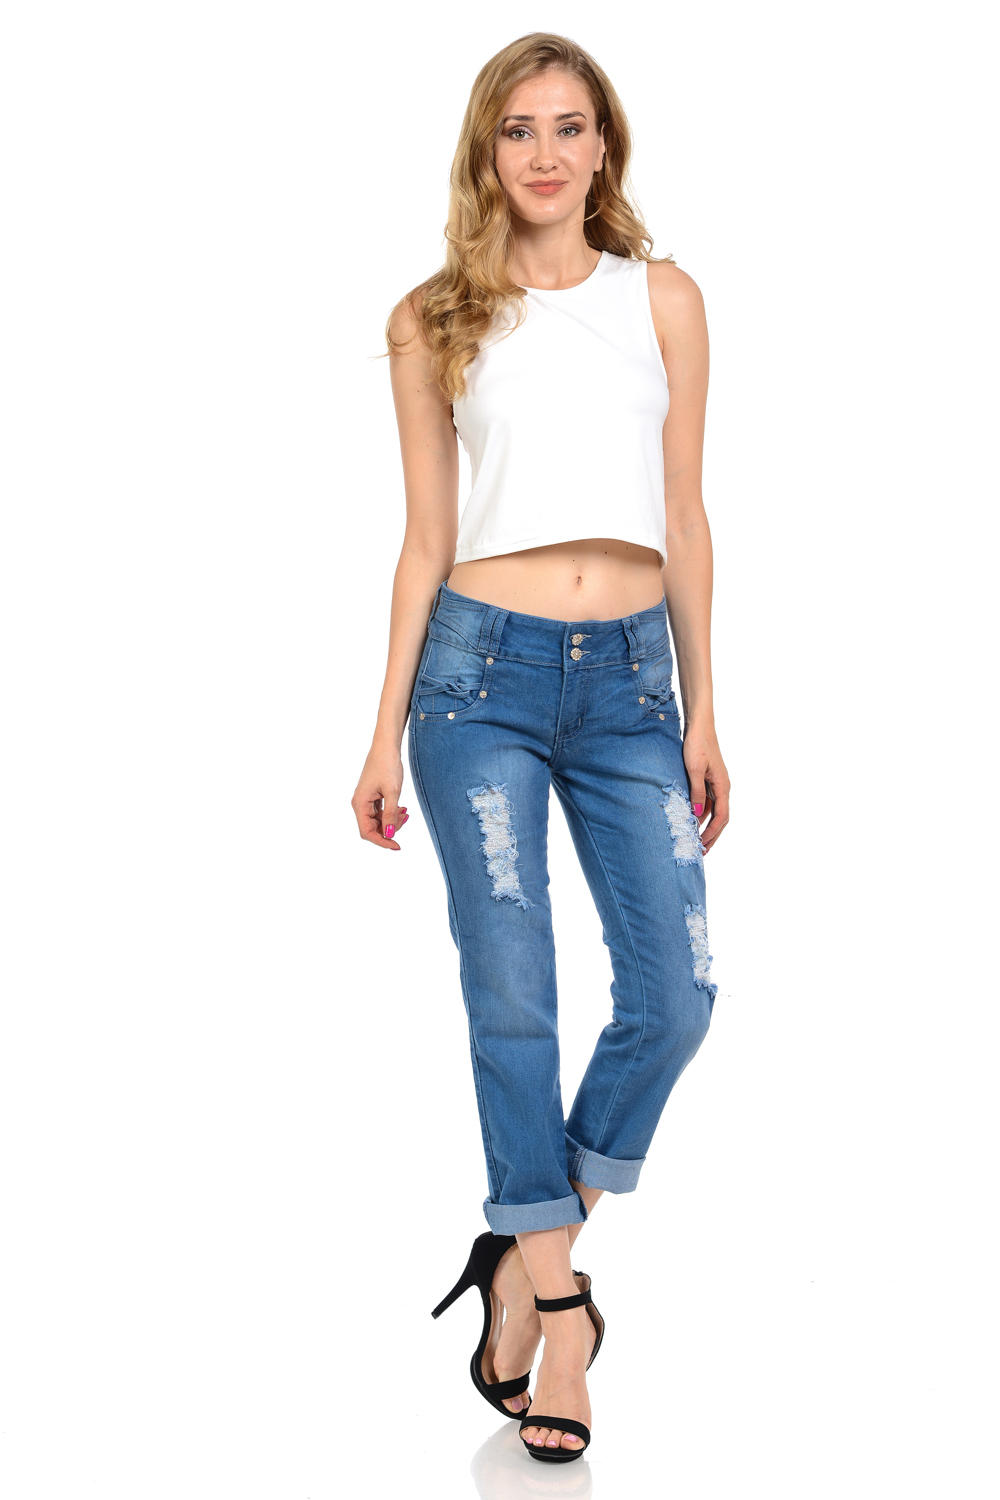 Sweet Look Premium Edition Women's Jeans - Push Up - Style M449